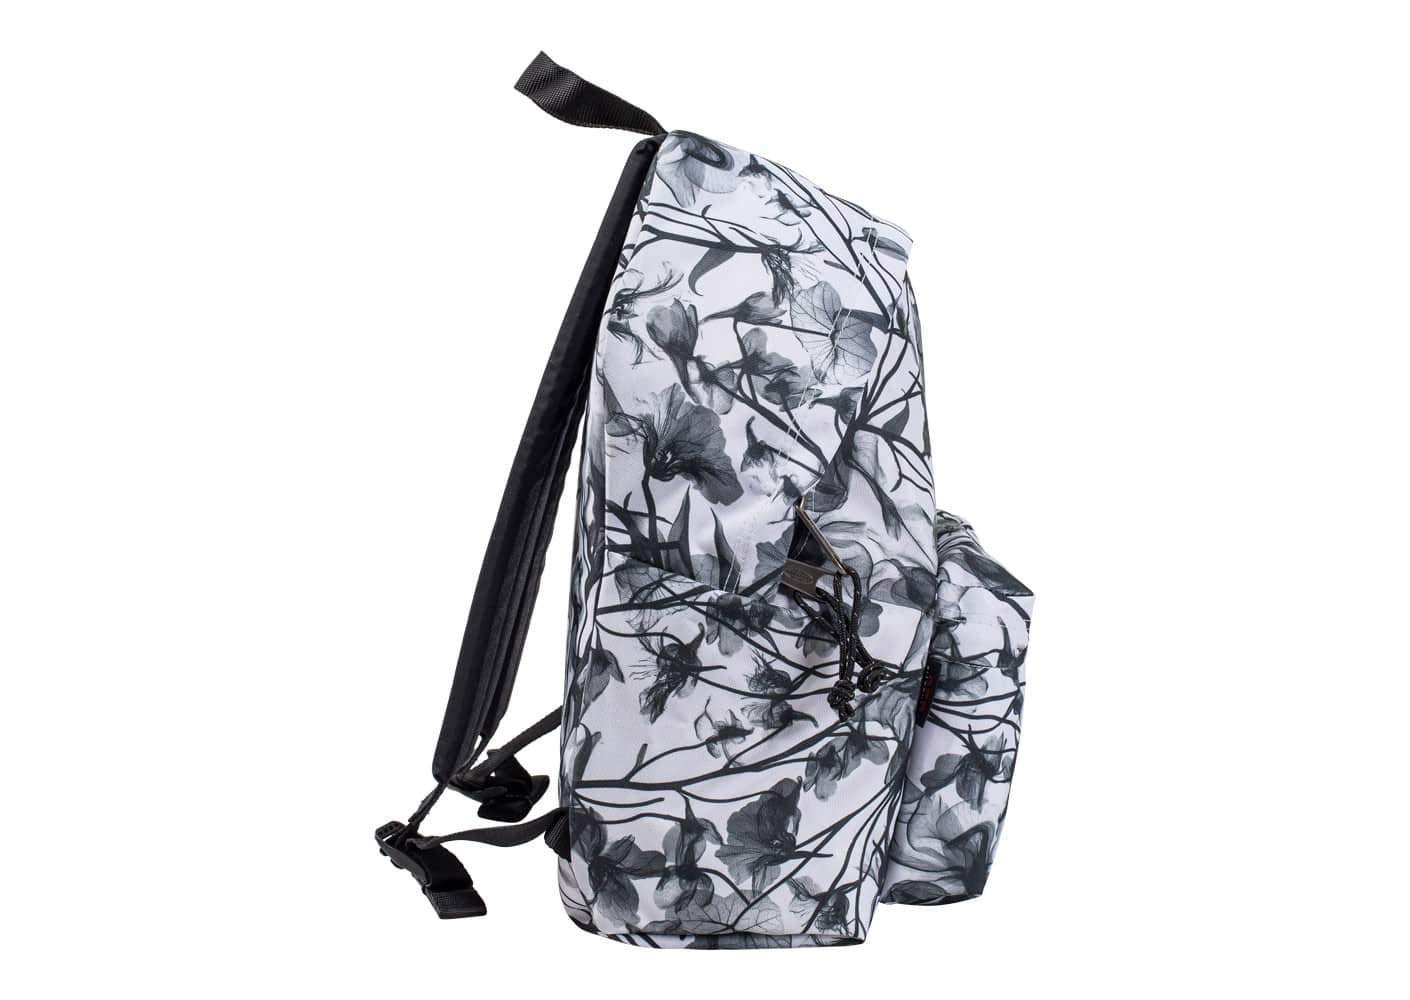 eastpak sac dos padded pak 39 r floral blanc sacs sacoches chausport. Black Bedroom Furniture Sets. Home Design Ideas